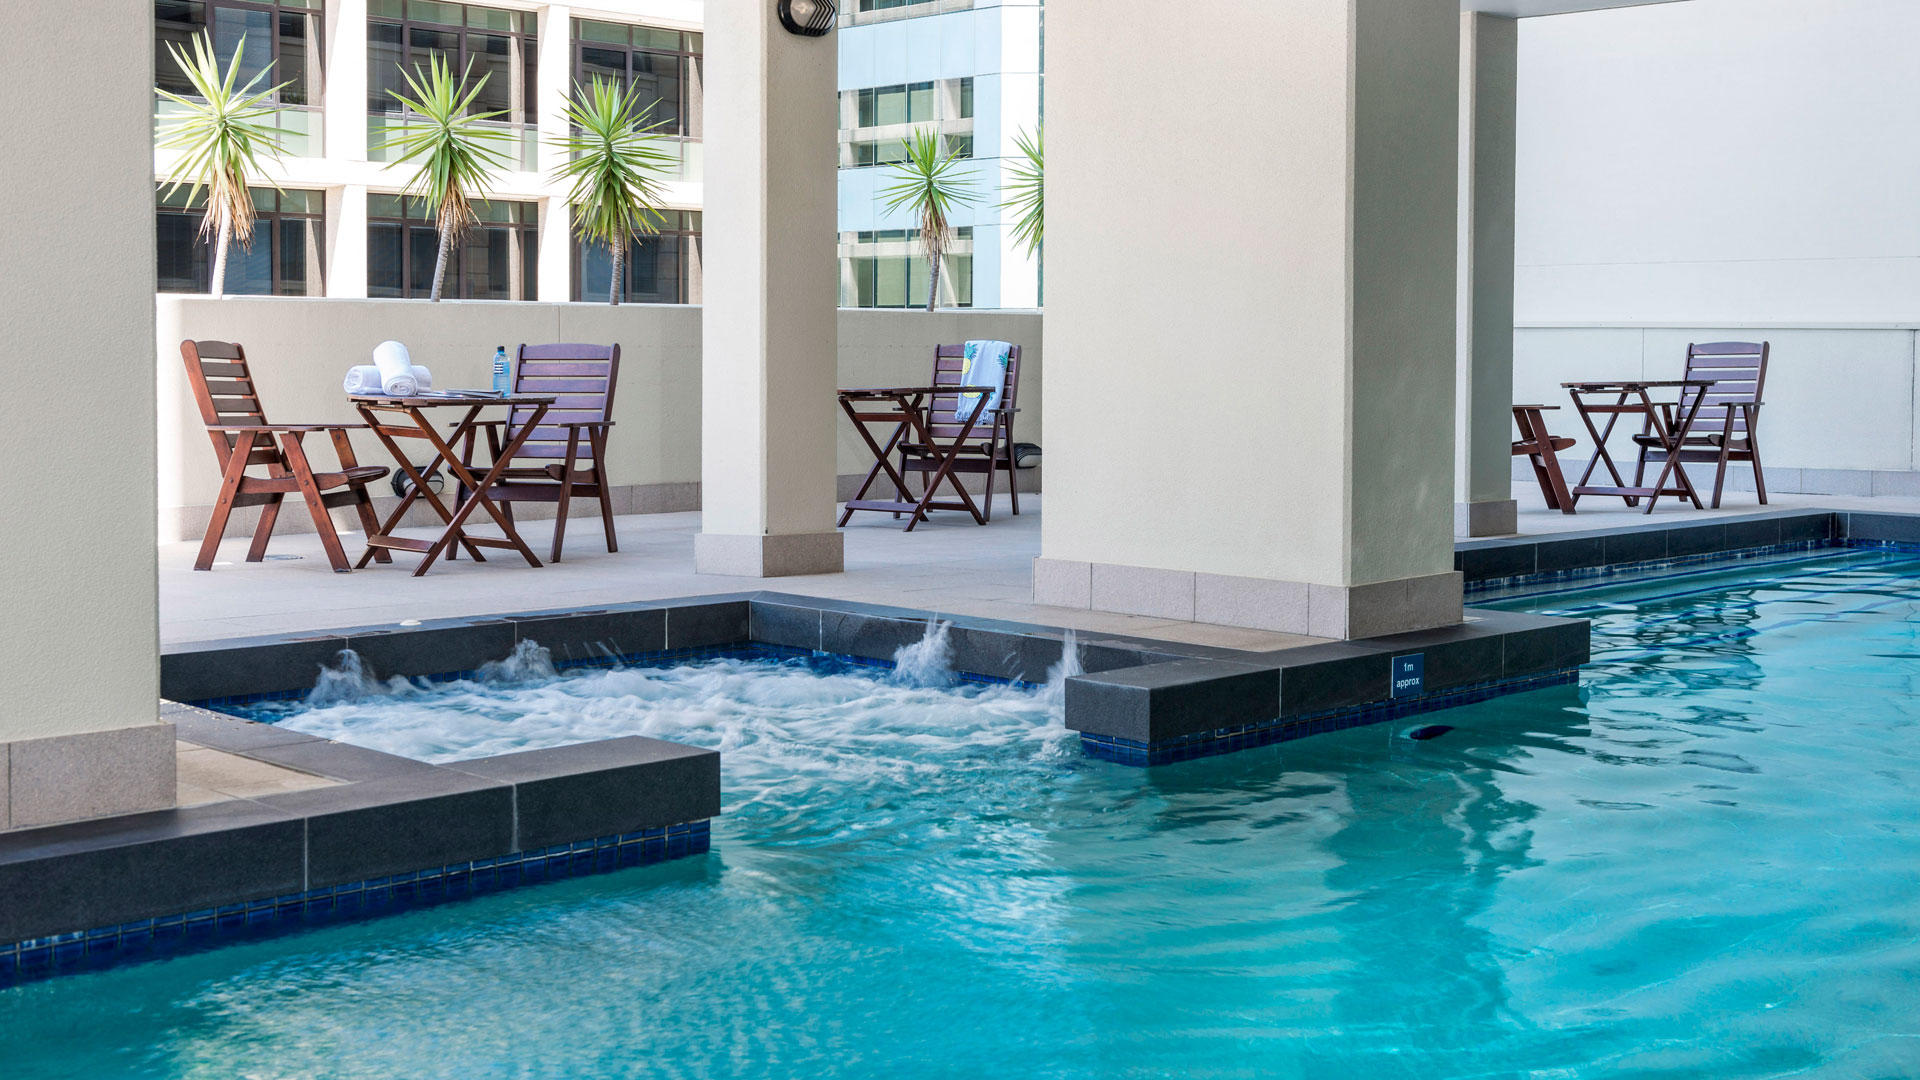 Oaks_LexiconApartments_Pool